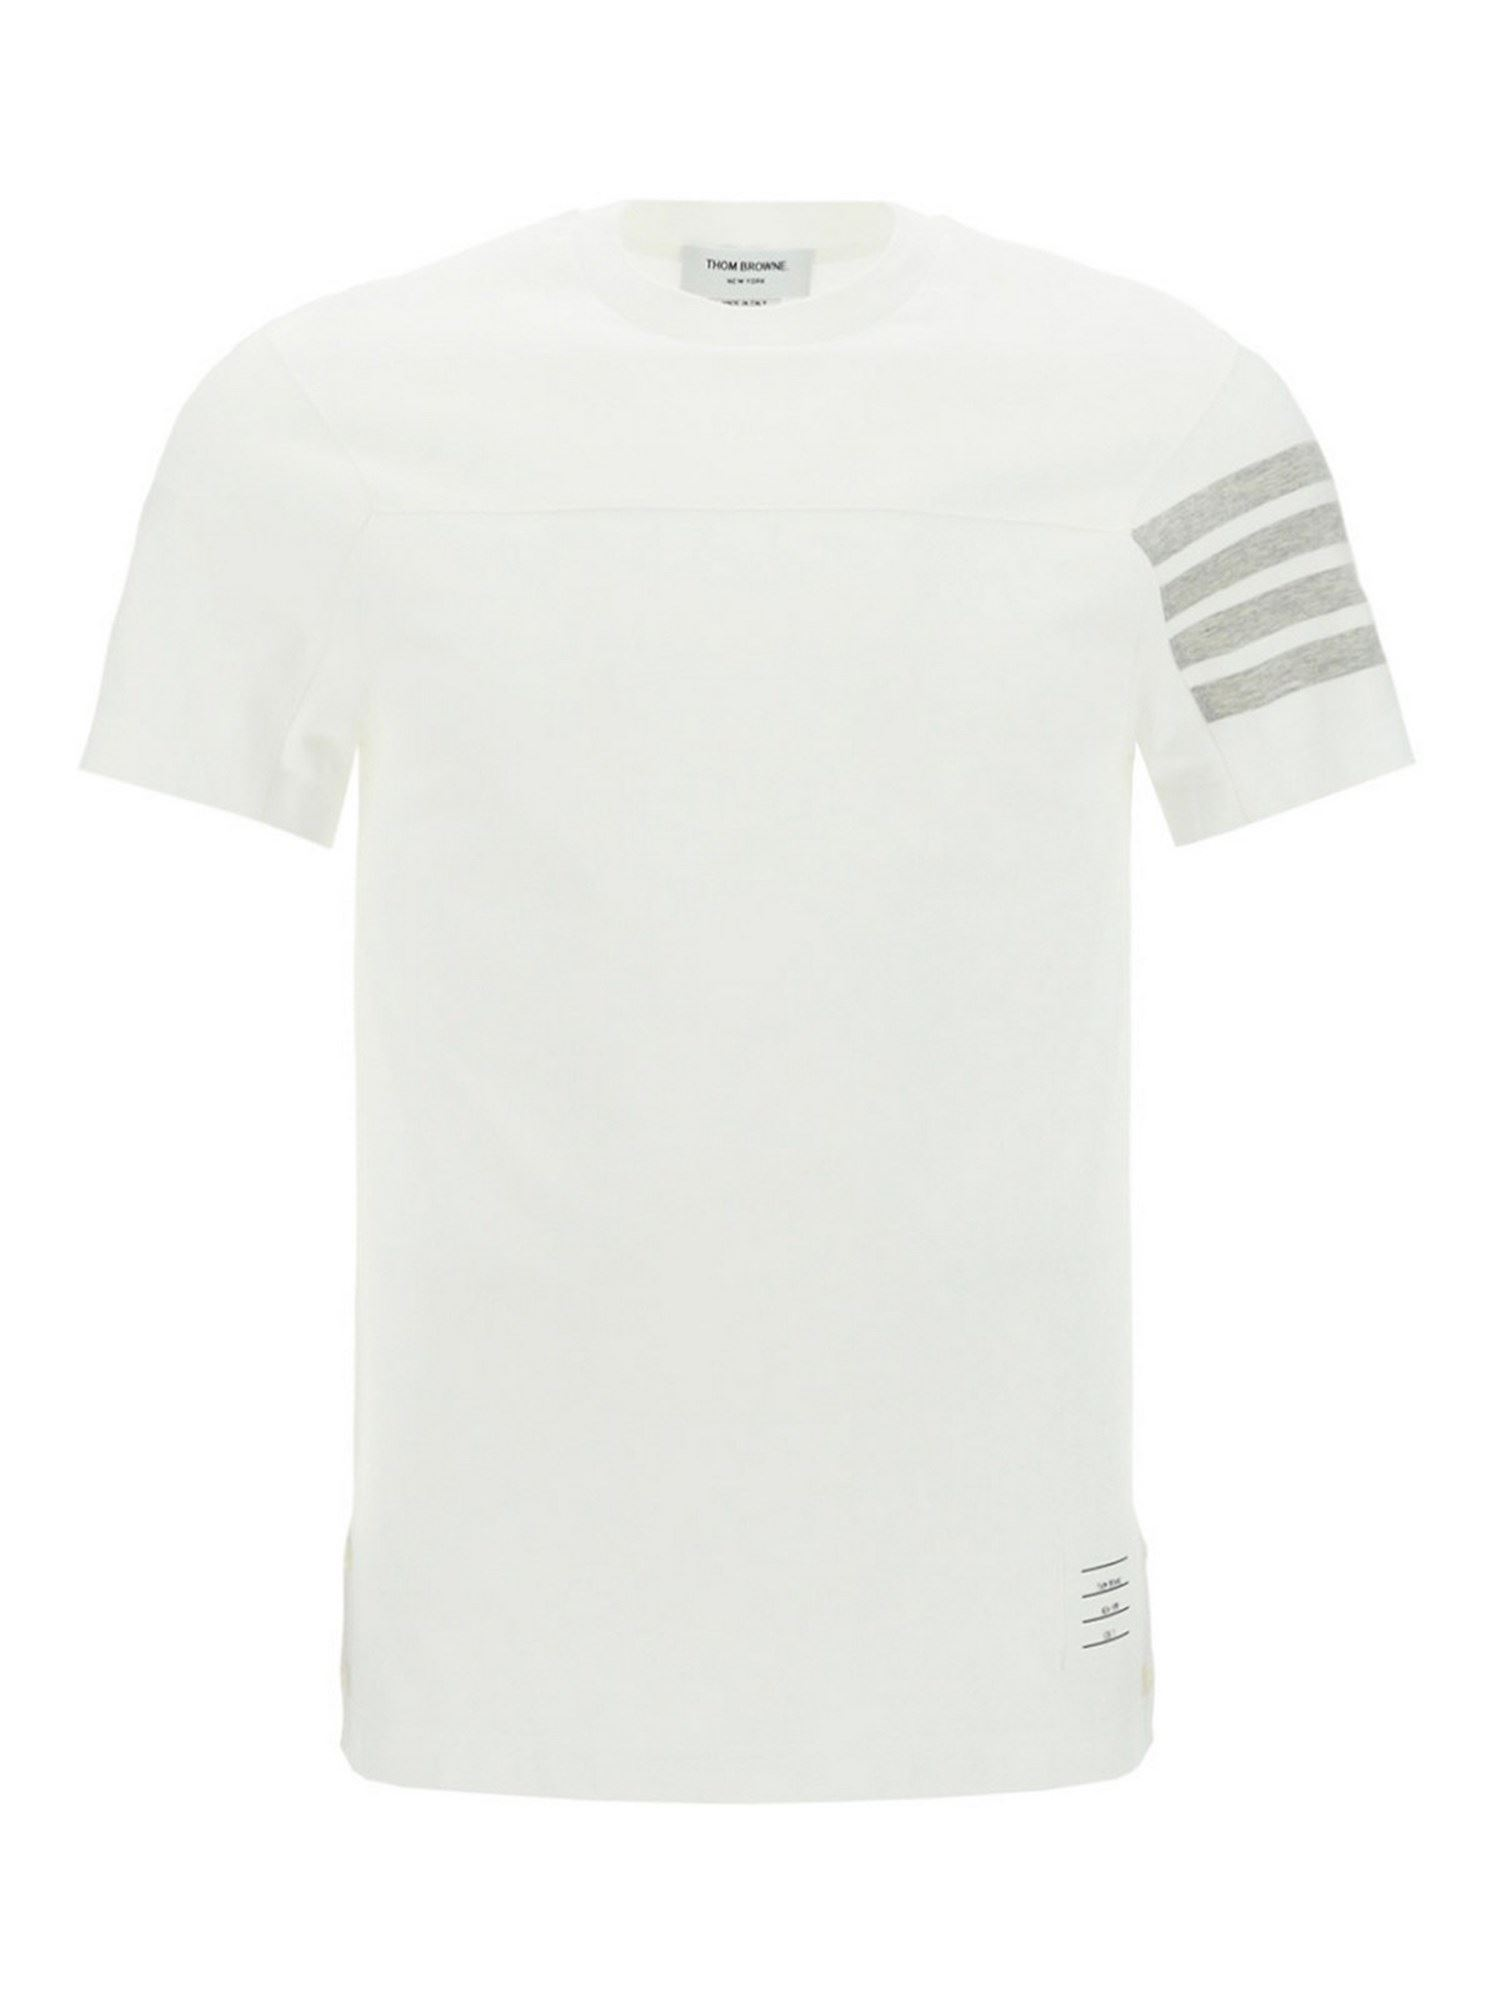 Thom Browne Tops STRIPED DETAIL COTTON T-SHIRT IN WHITE